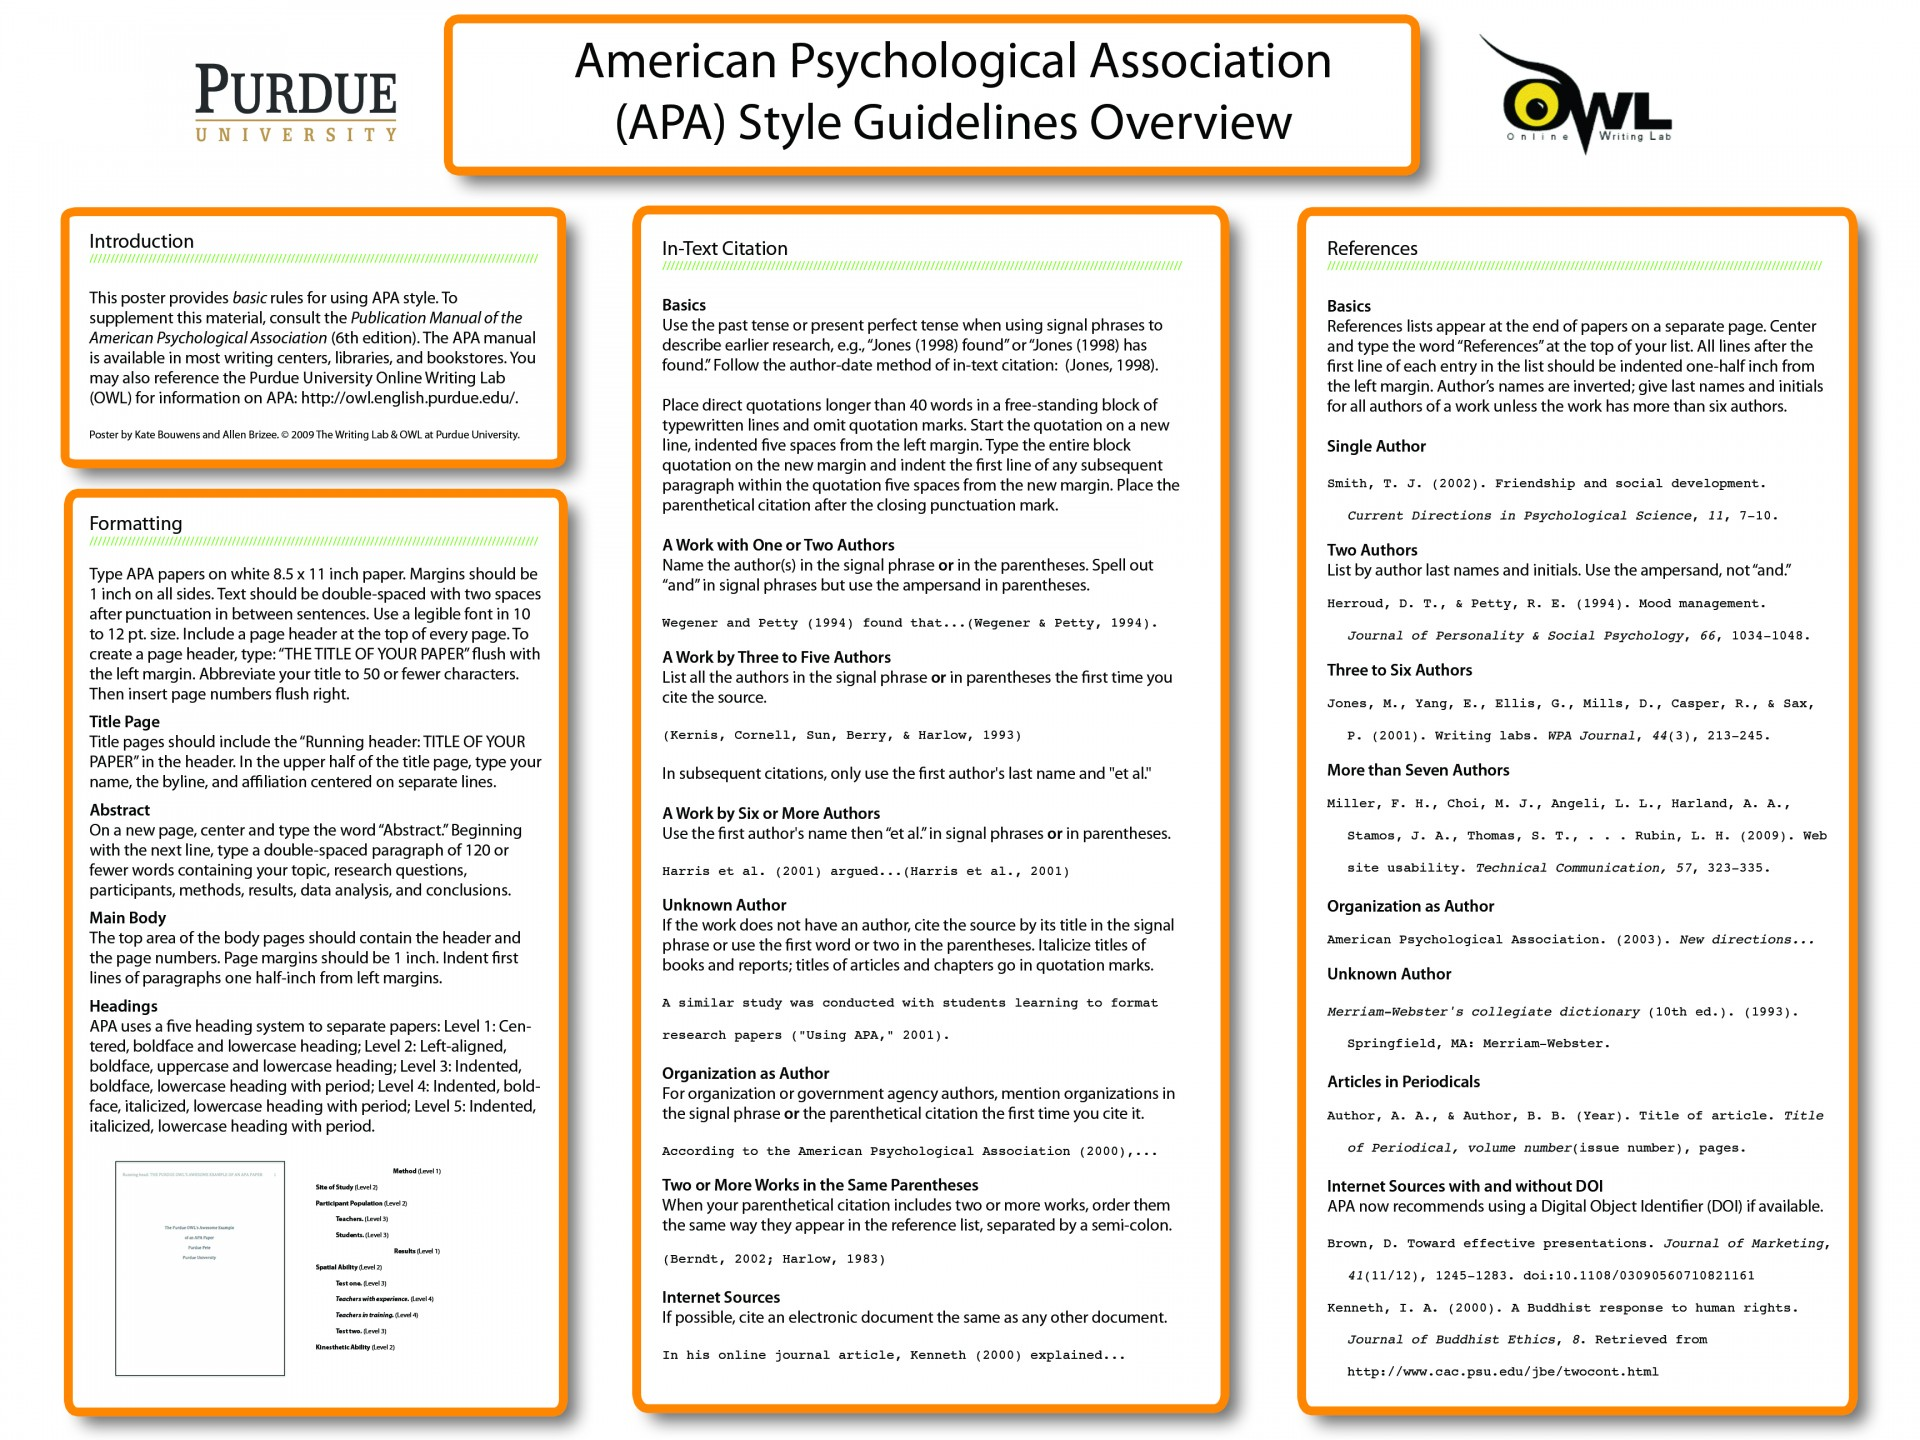 010 Apaposter09 Research Paper Apa Archaicawful Cite Style Referencing Sample Works Cited Page Format Bibliography 1920